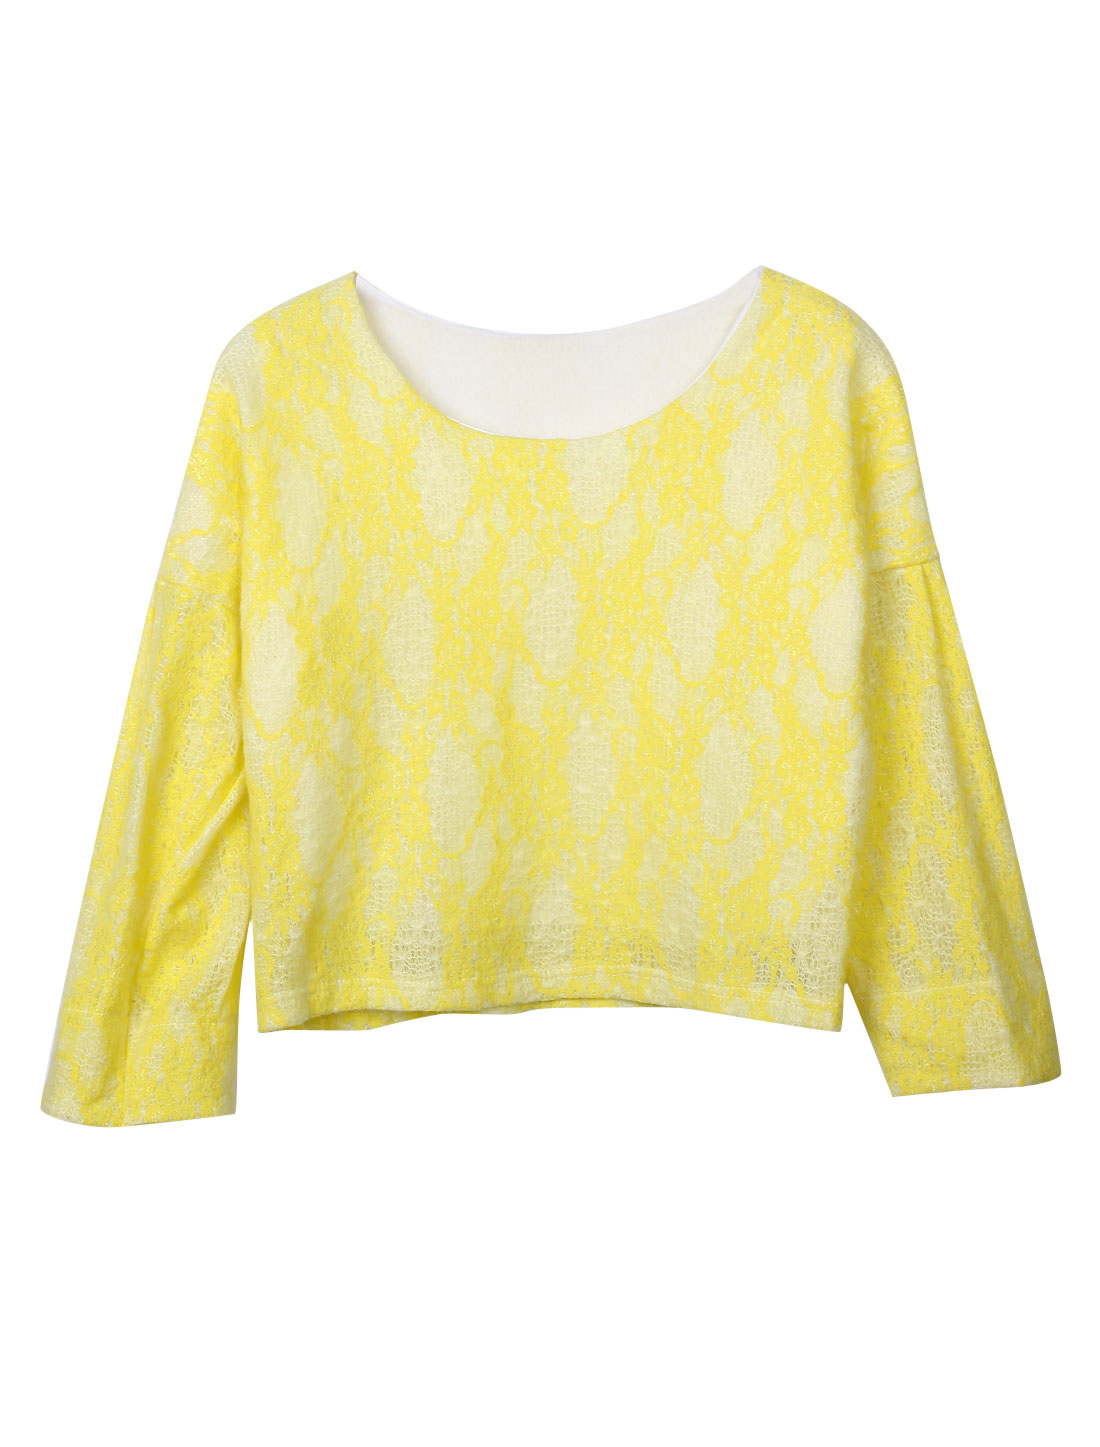 Women Round Neck Batwing Sleeves Lace Lining Casual Top Yellow S